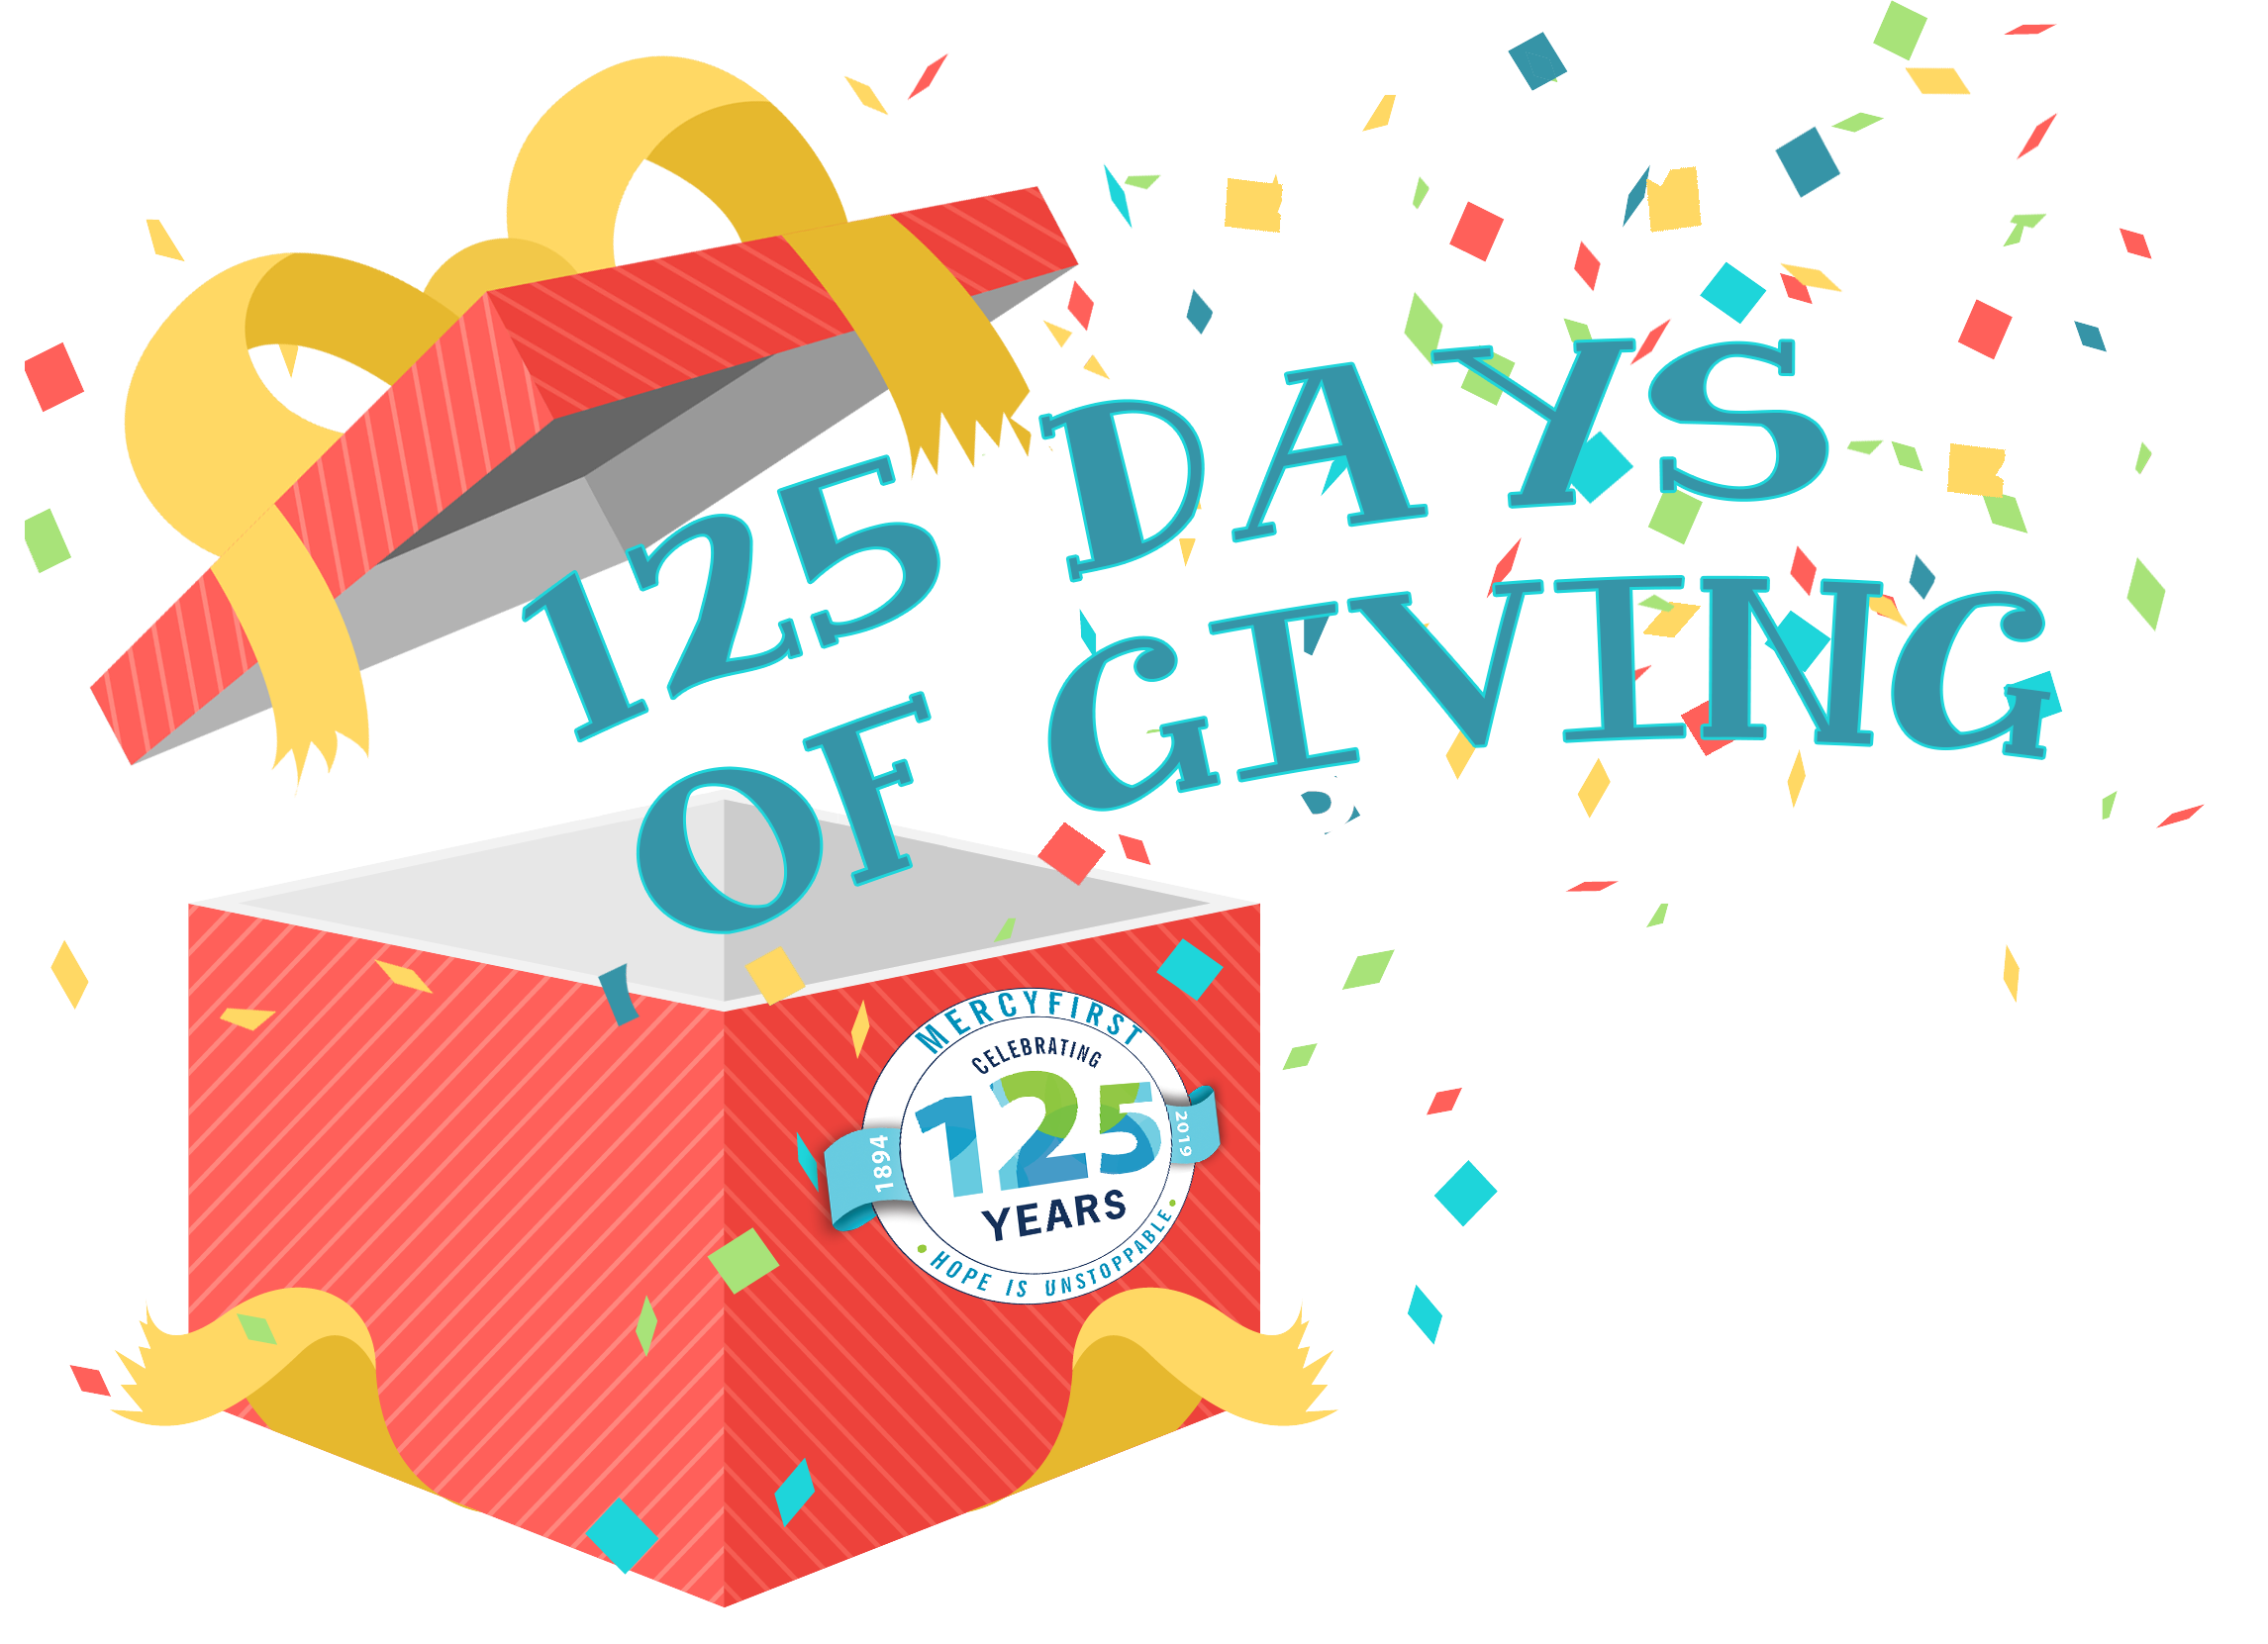 125 Days of Giving   Senior Staff have decided to give away 125 gift cards to 125 staff over the next 125 days!